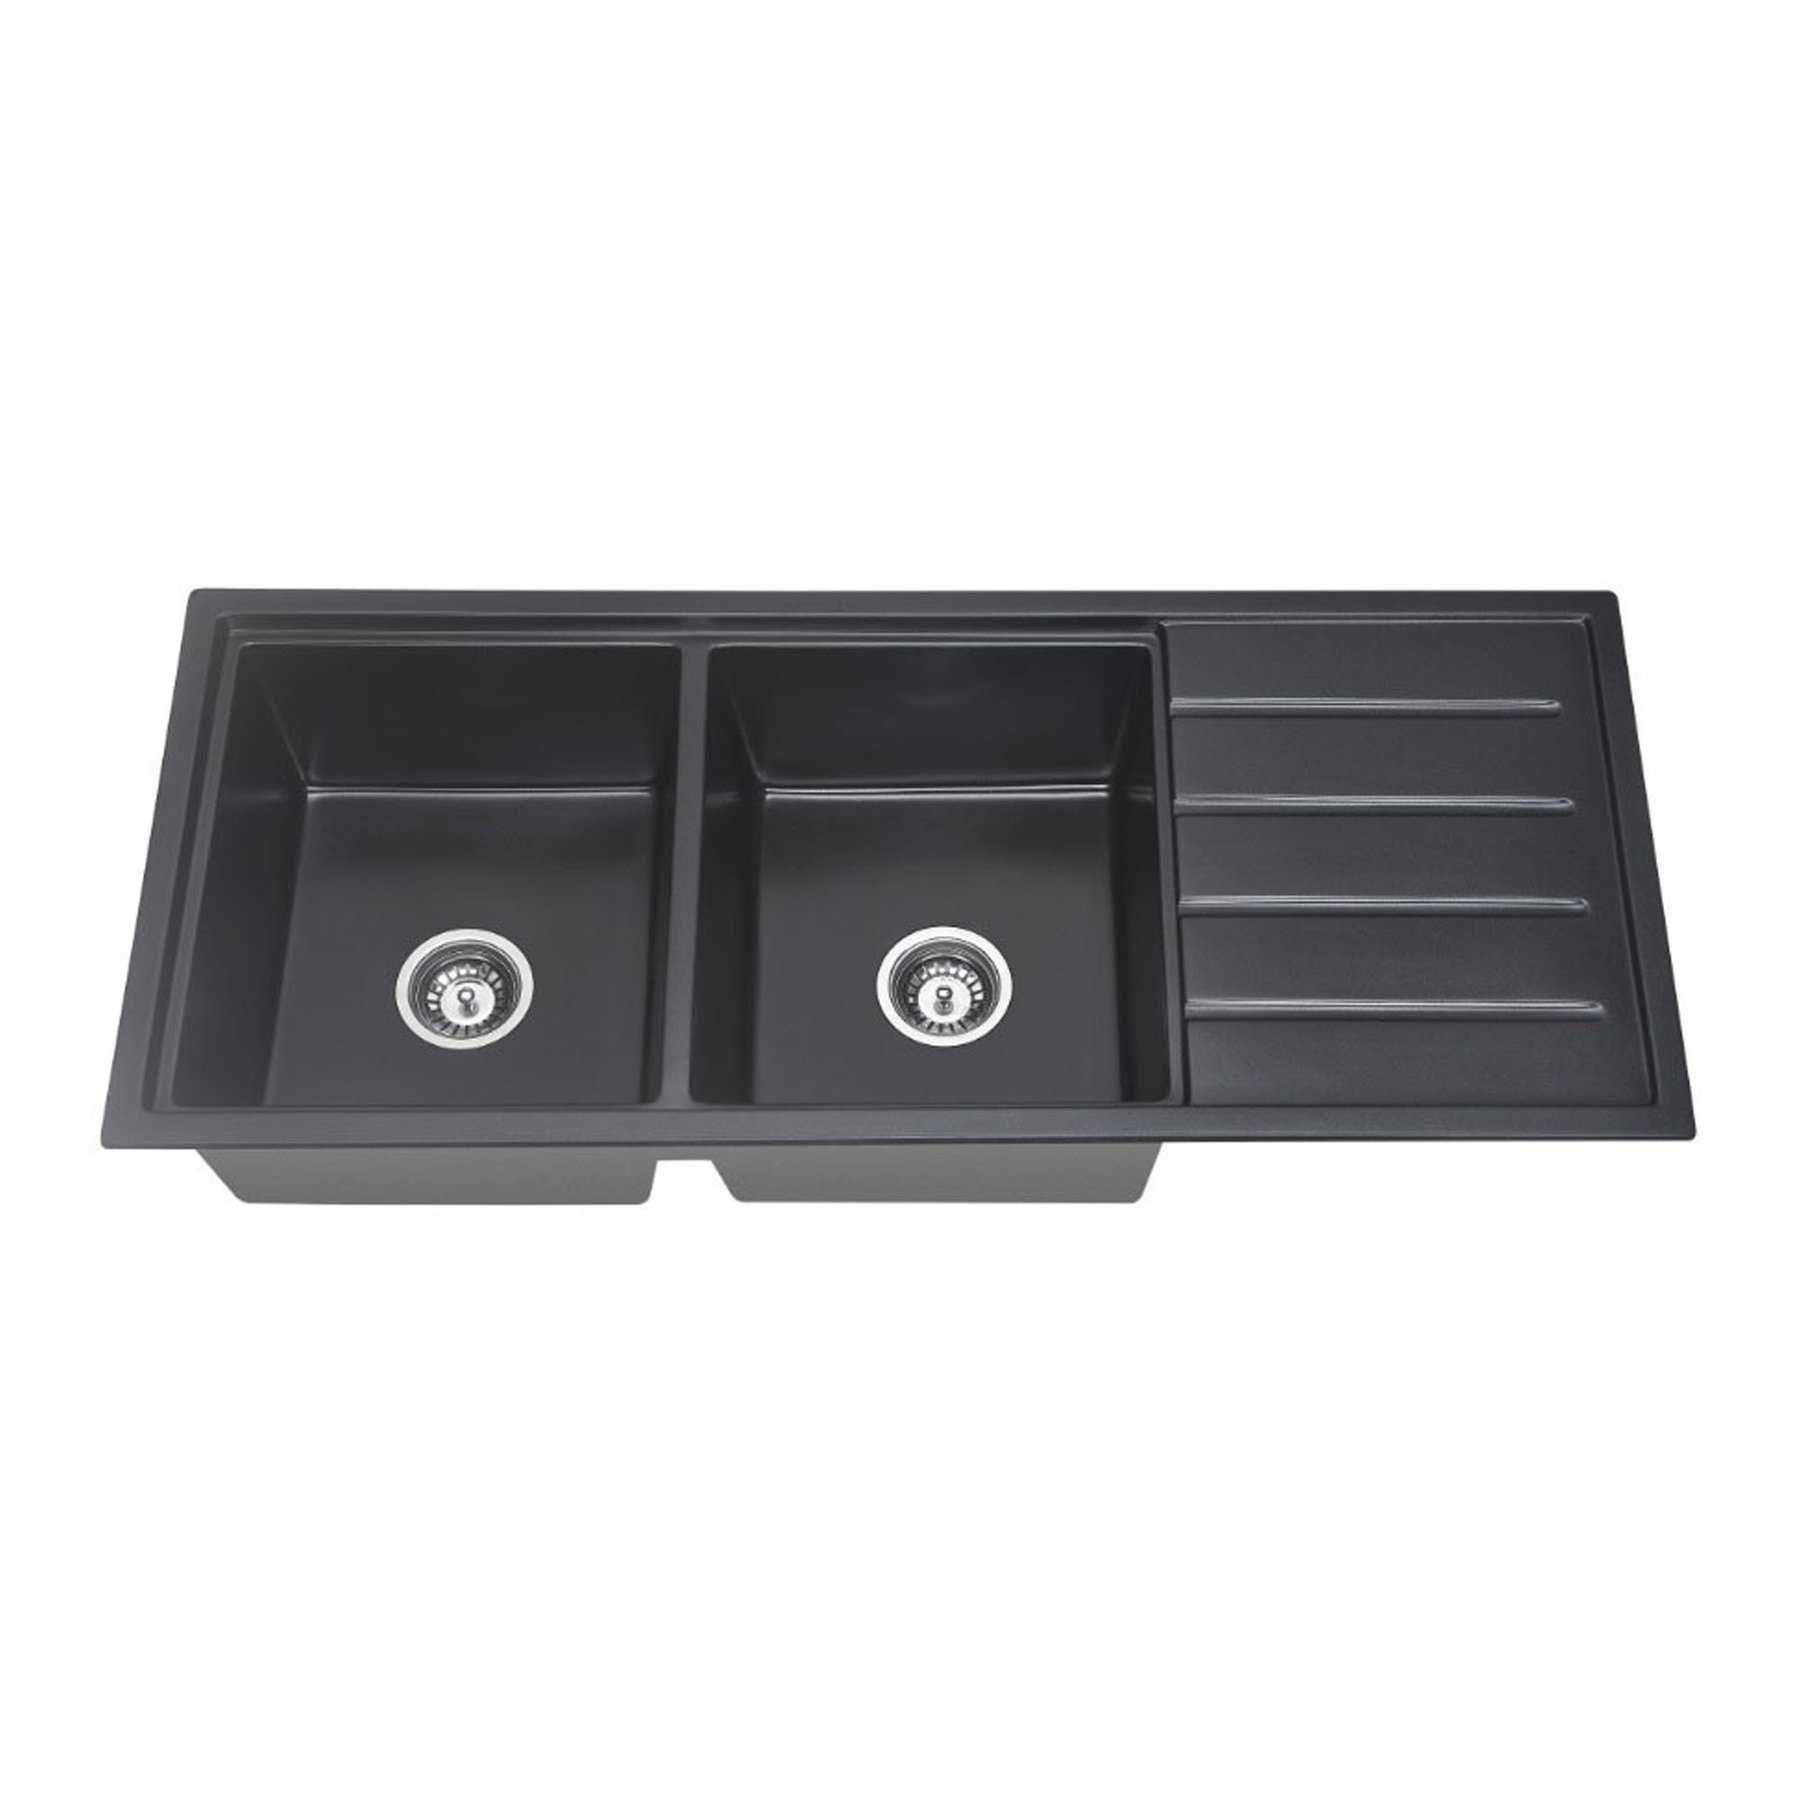 ARCKO GRANITE 1160mm Double Bowl Sink with Drainer